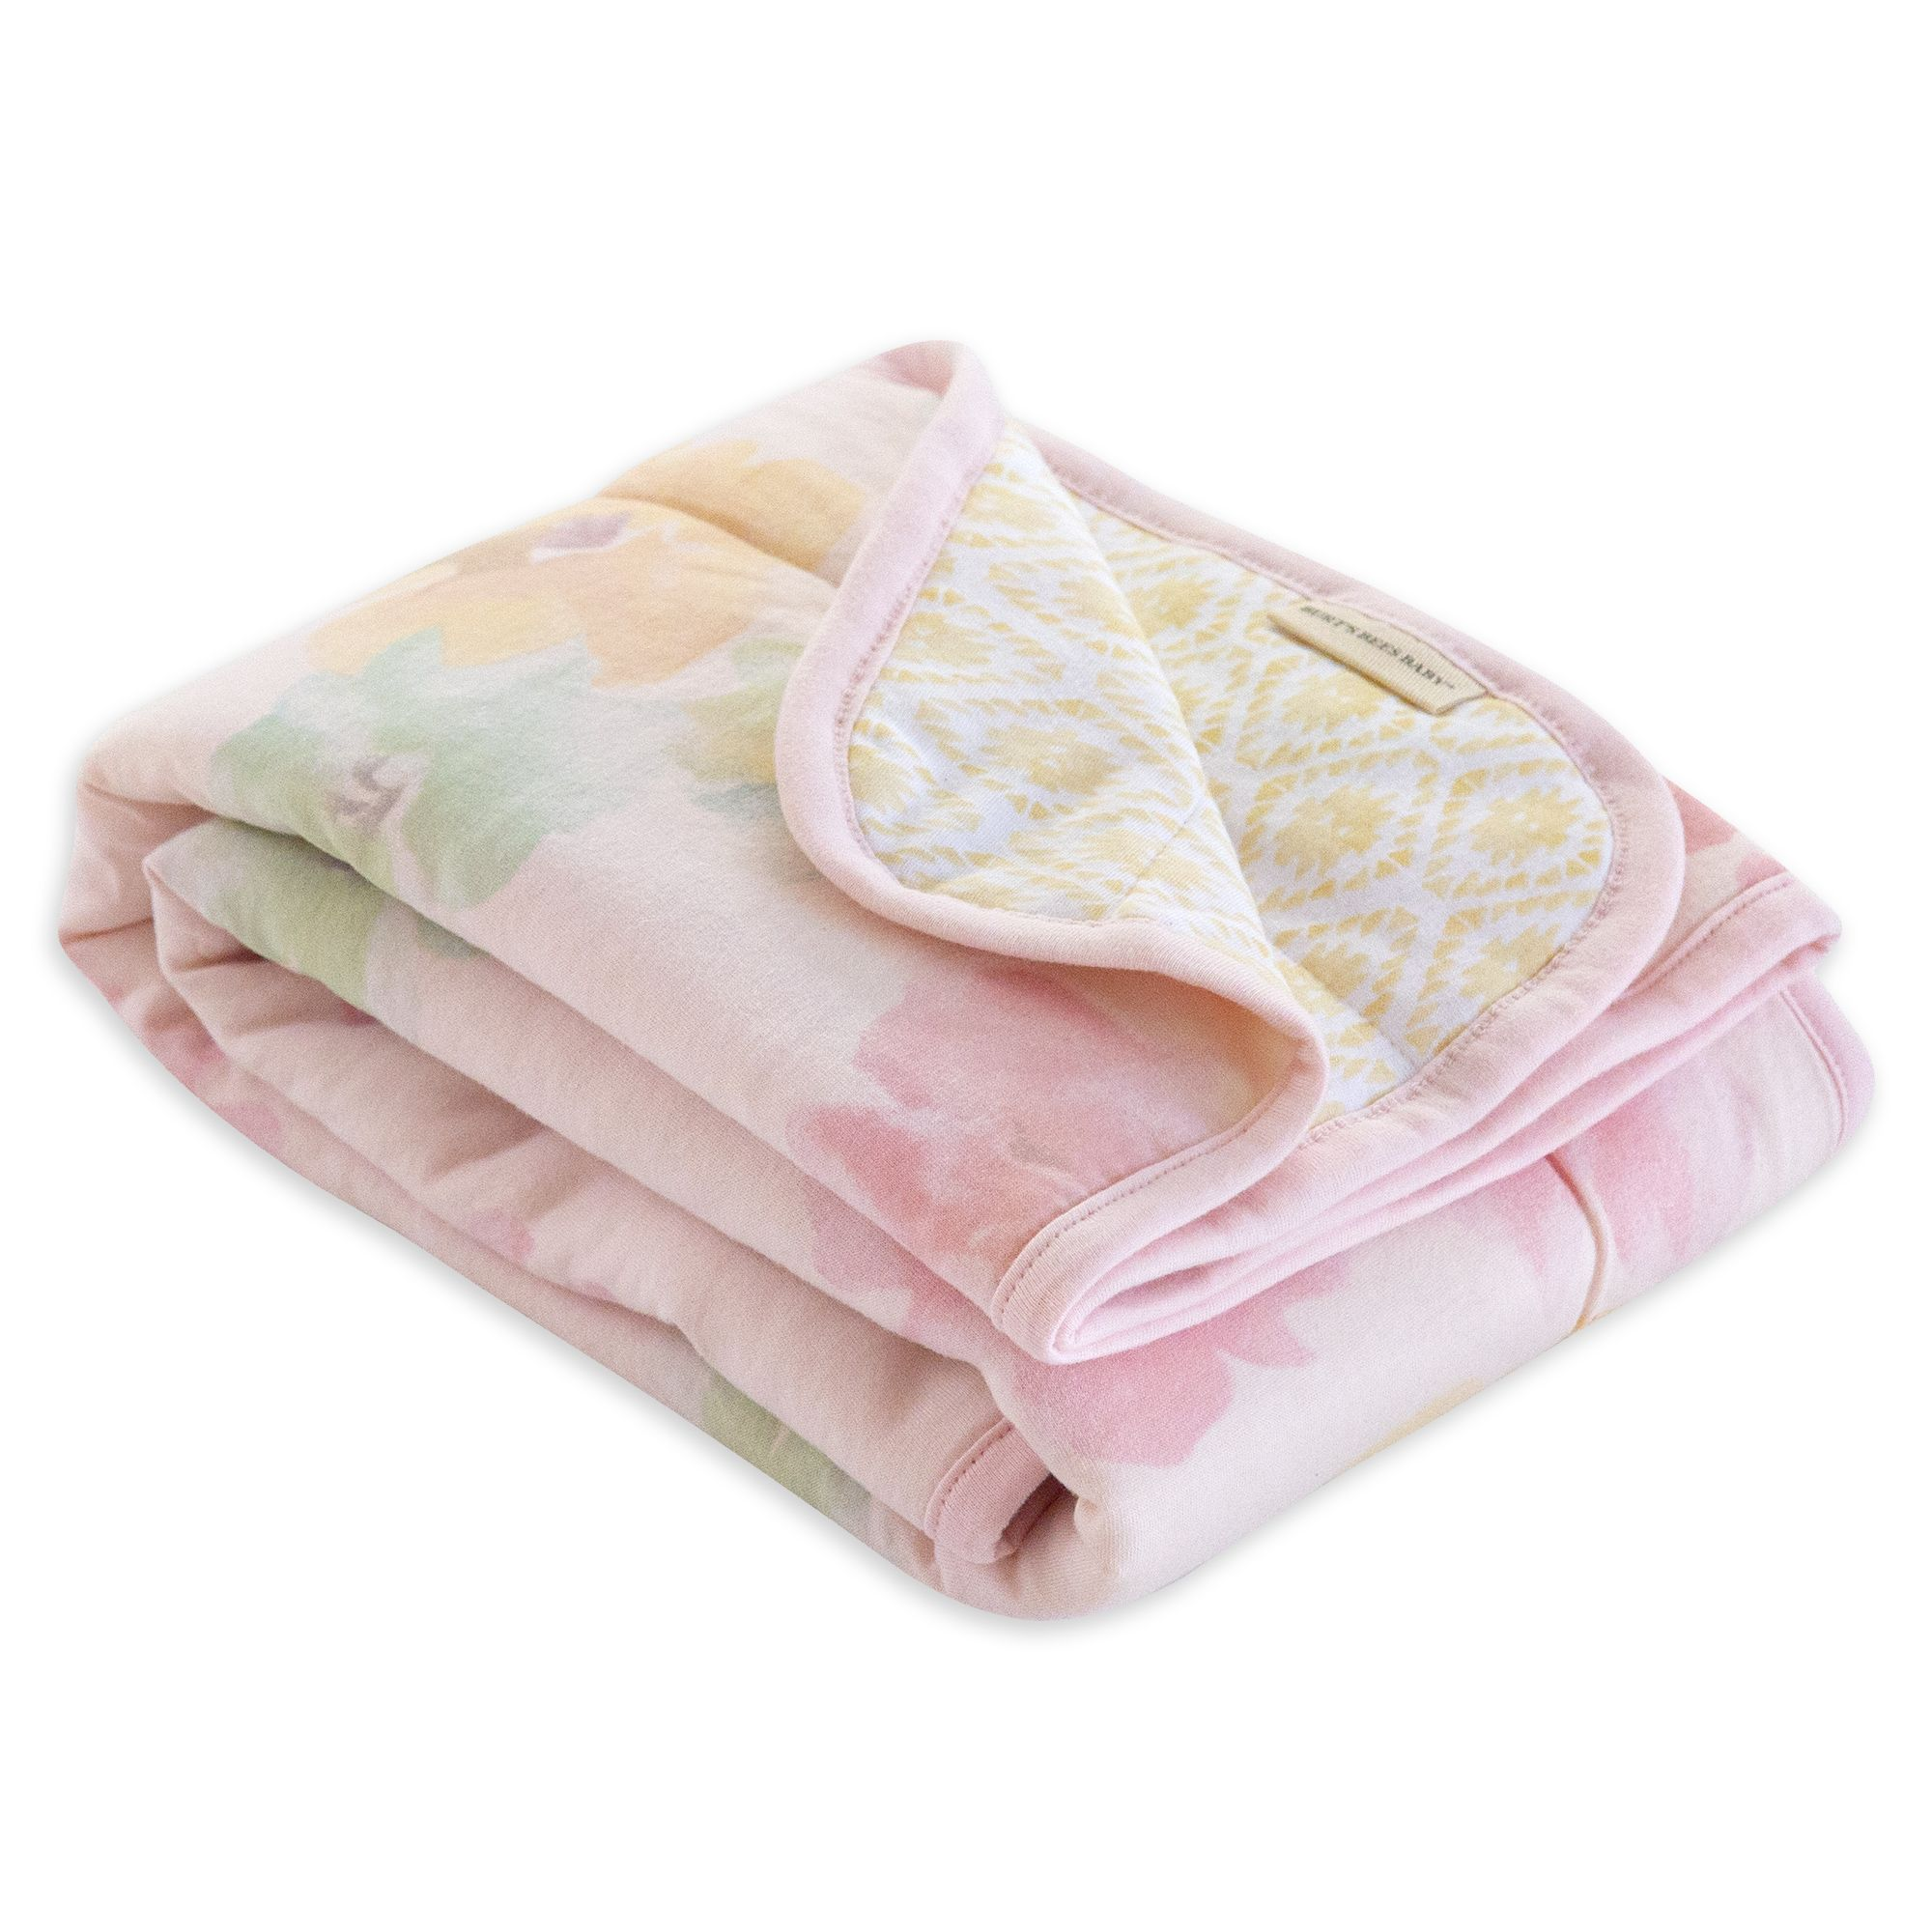 Watercolor Morning Glory Jersey Knit Organic Reversible Baby Blanket